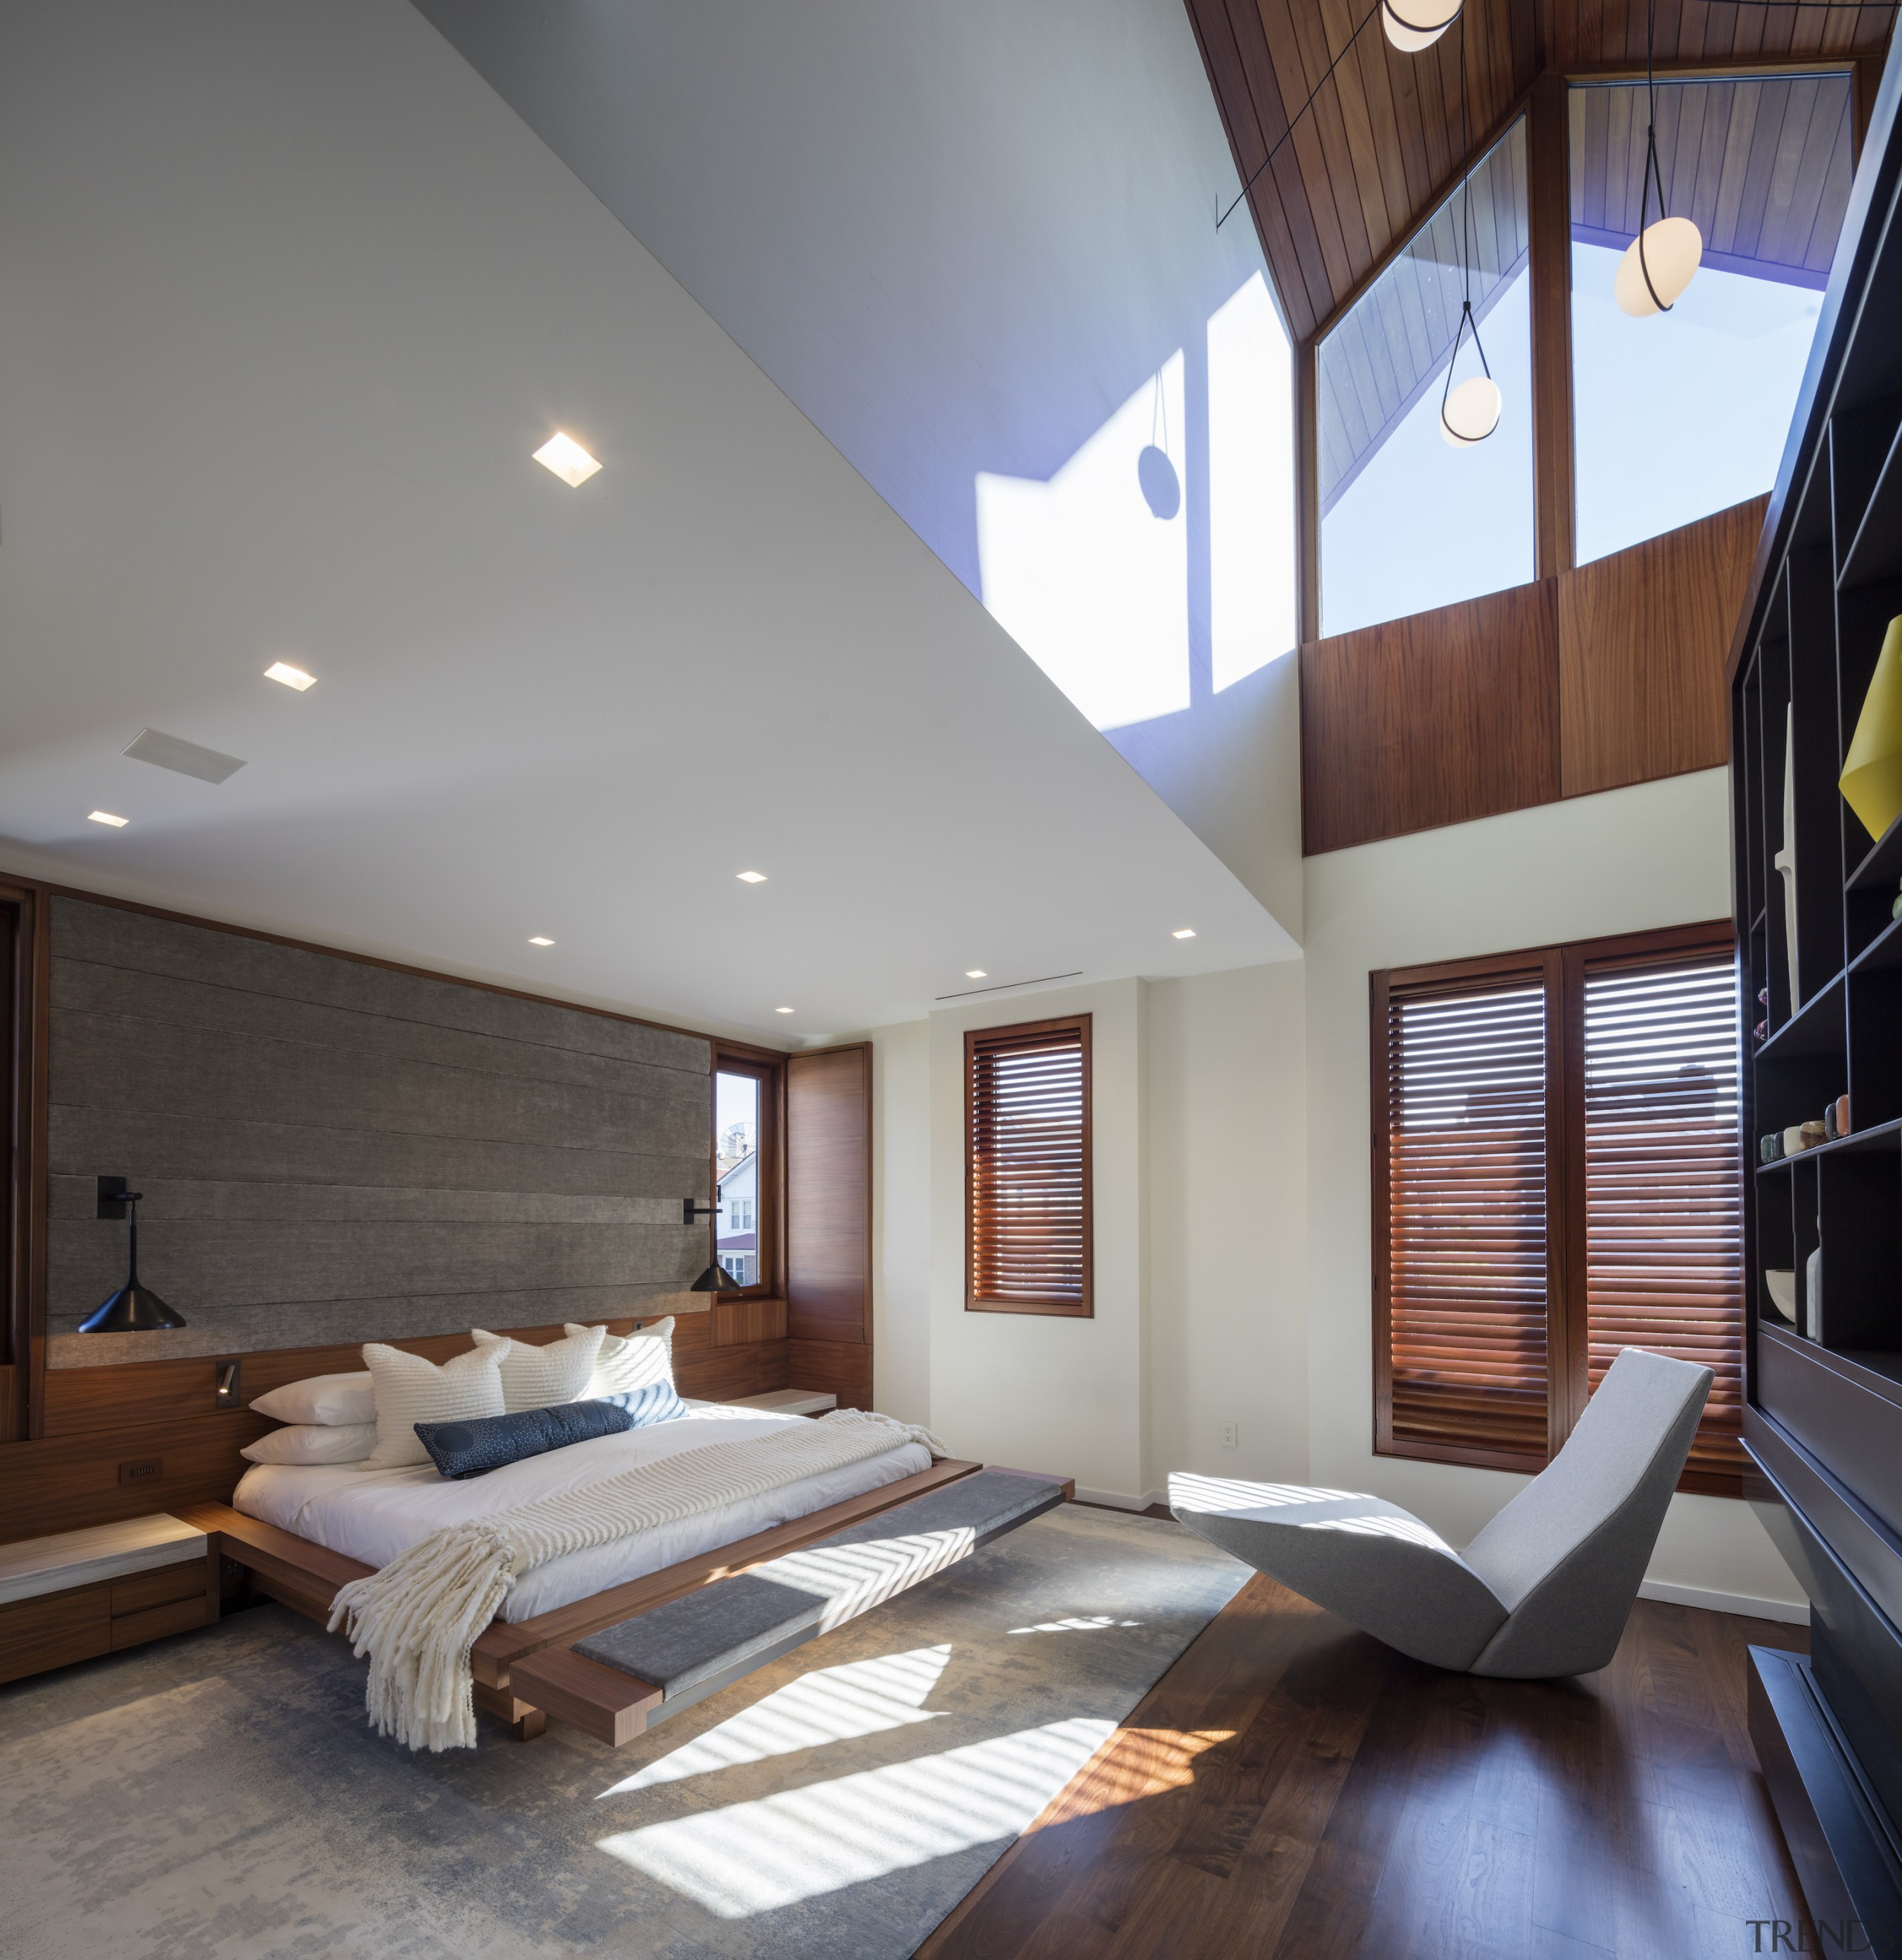 The master bedroom occupies a dynamic volume, while